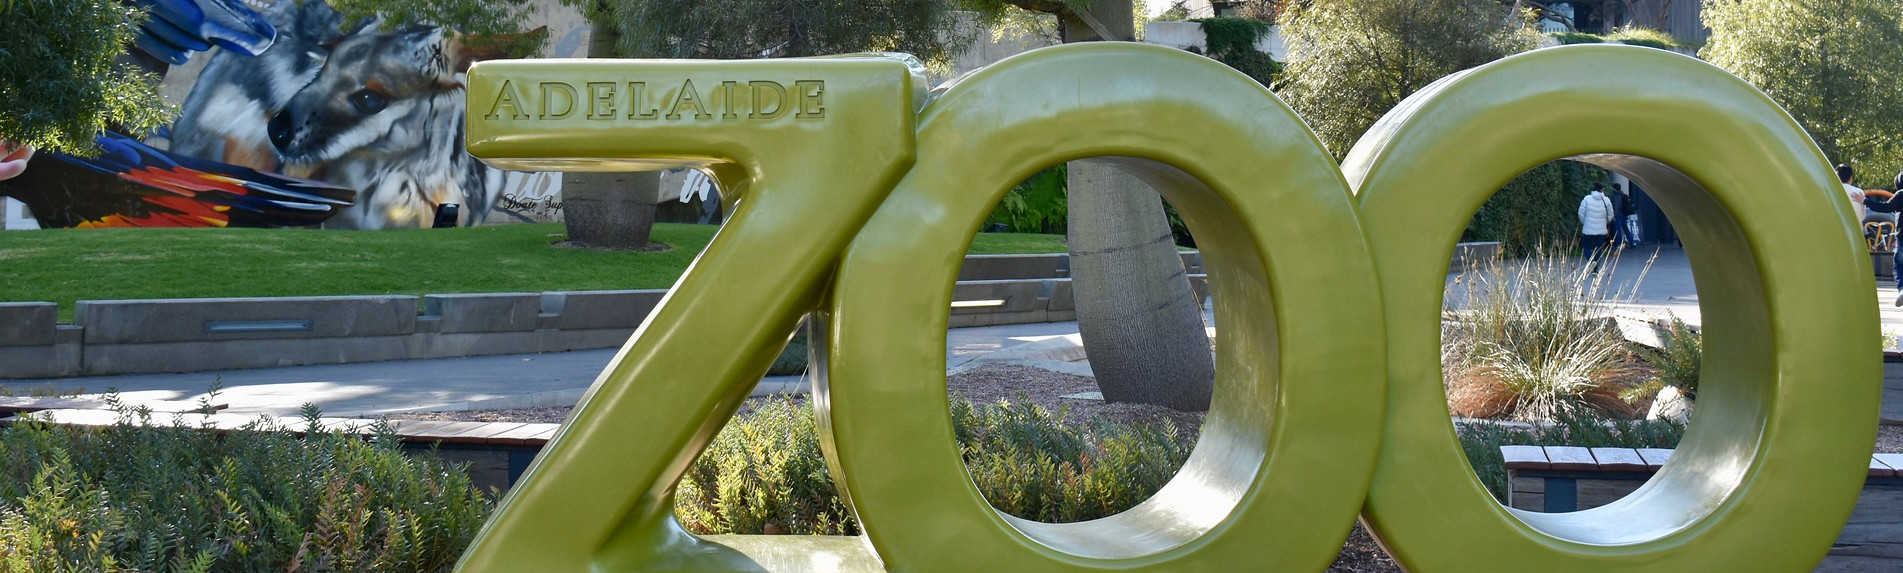 Why You Should Visit the Adelaide Zoo